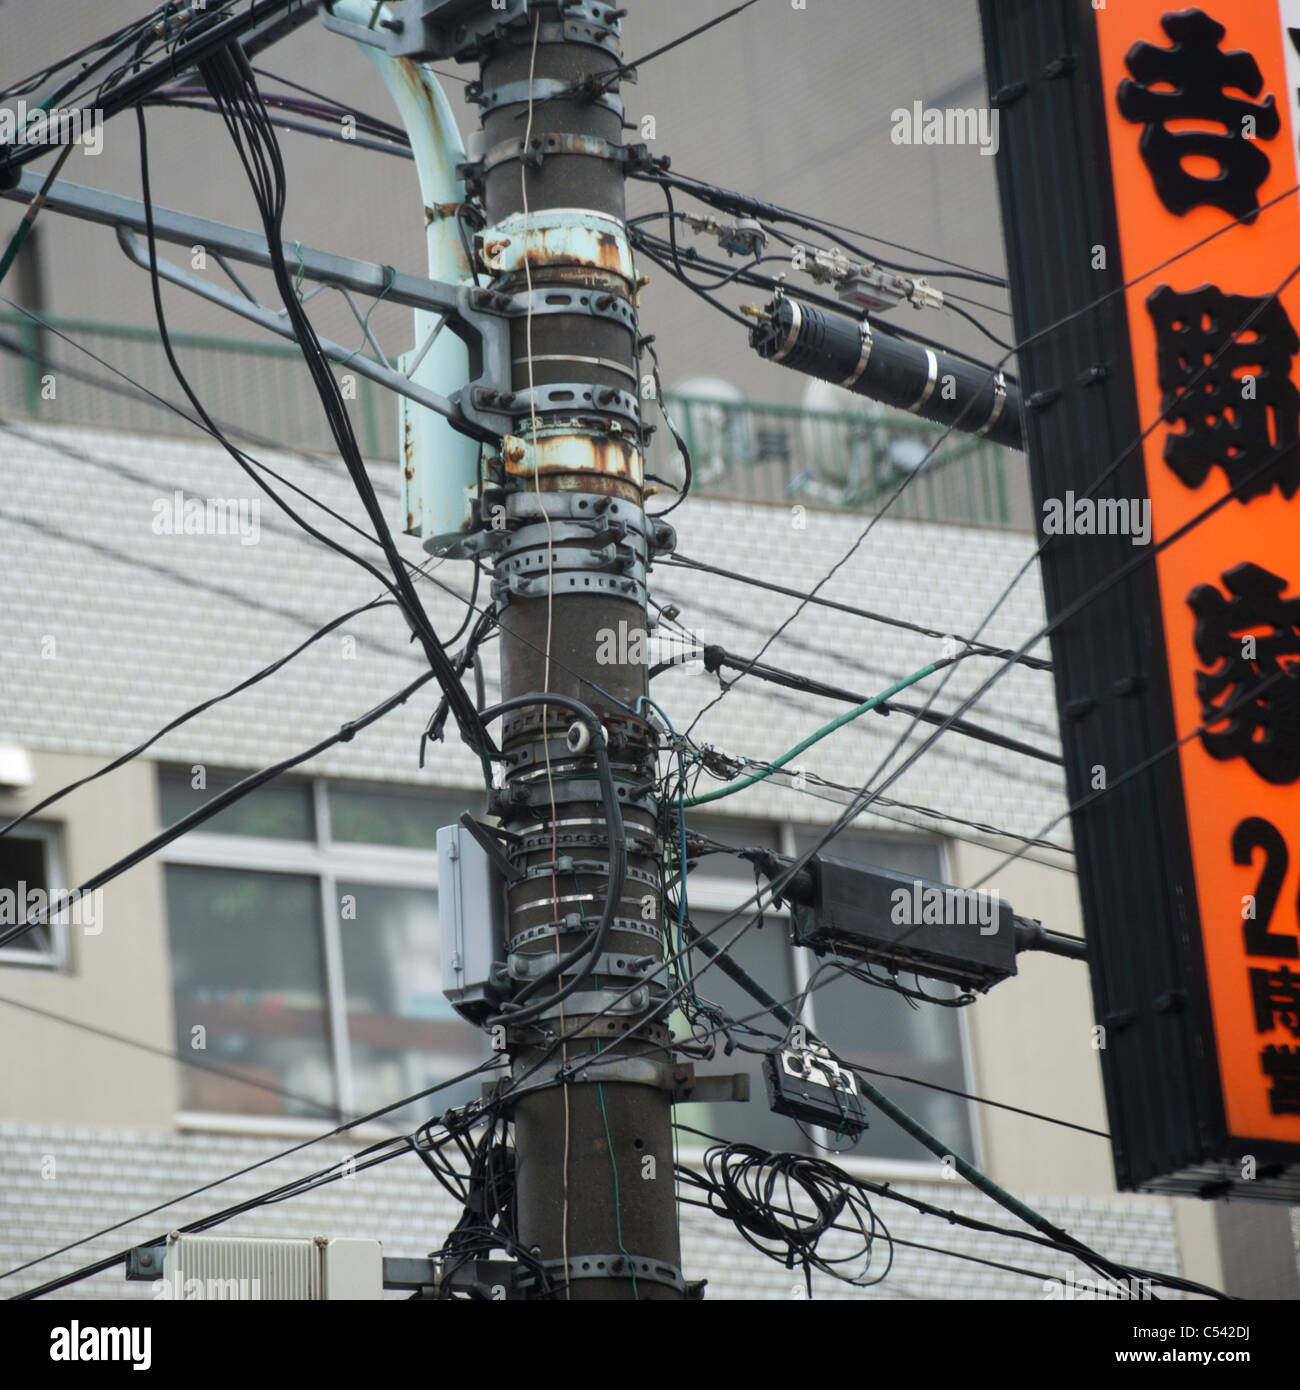 Light Pole Japan: Low Angle View Of An Electric Pole, Tokyo, Japan Stock